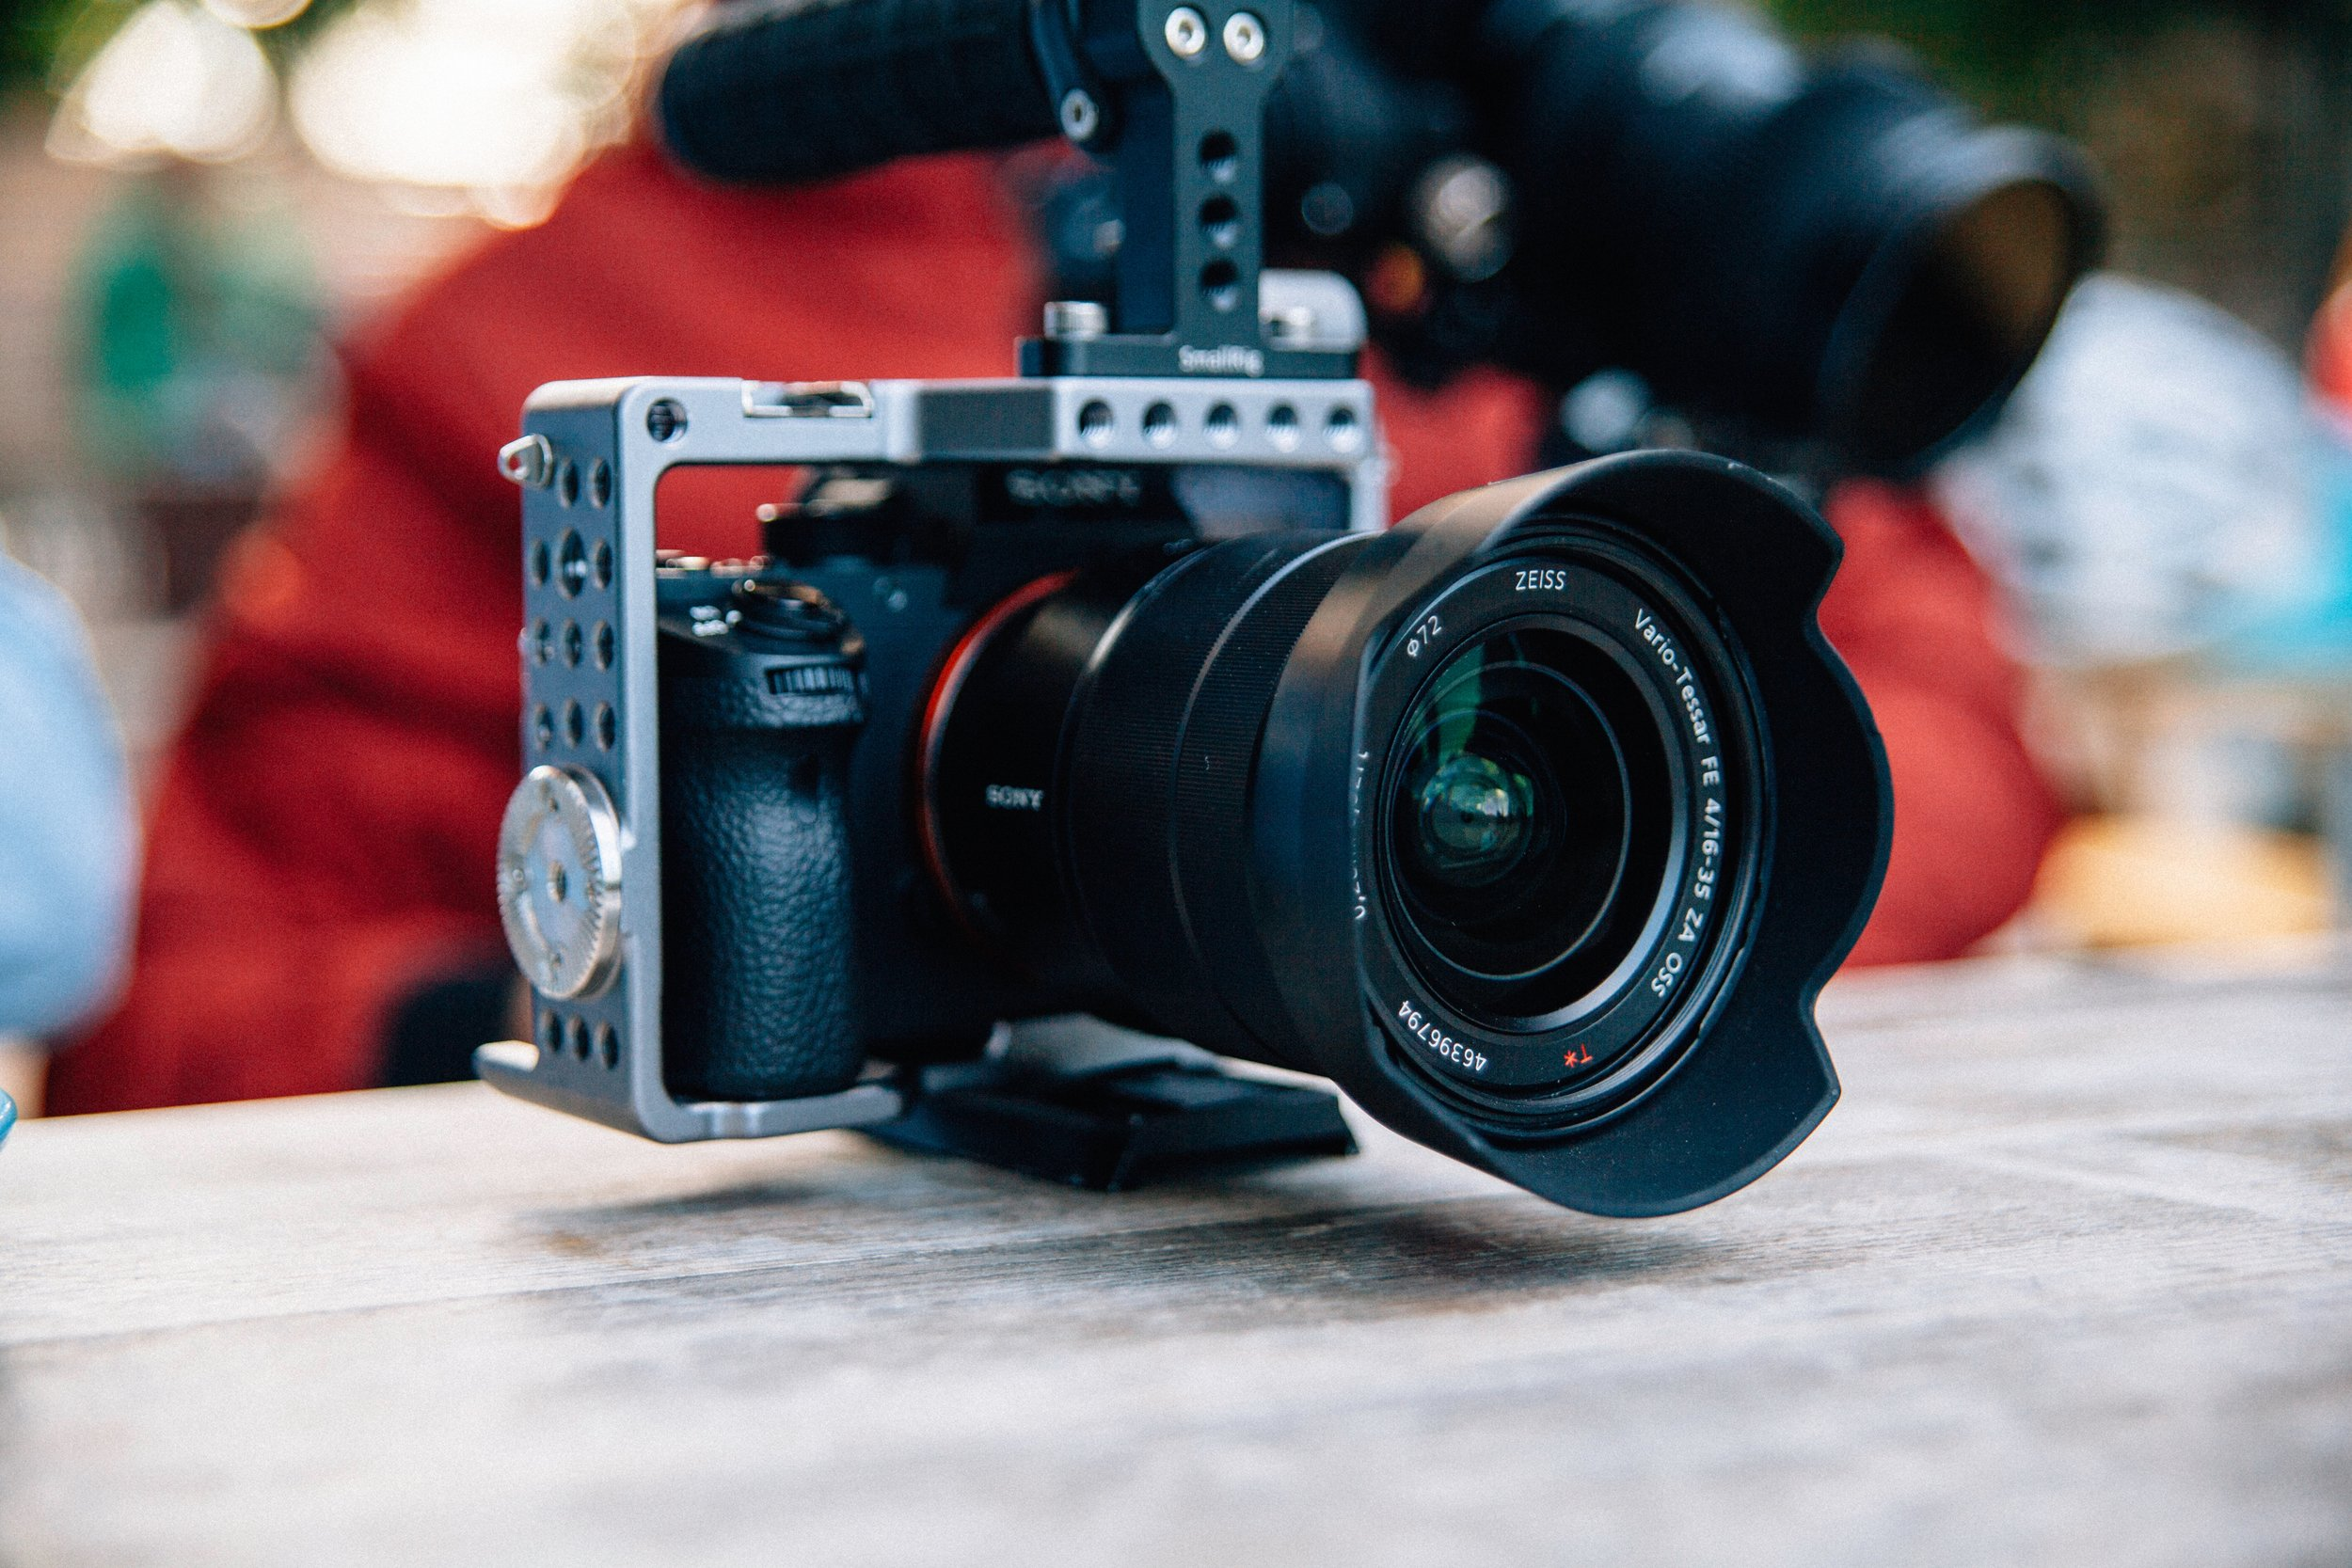 About us - We are a video production studio based across London and Buckinghamshire.